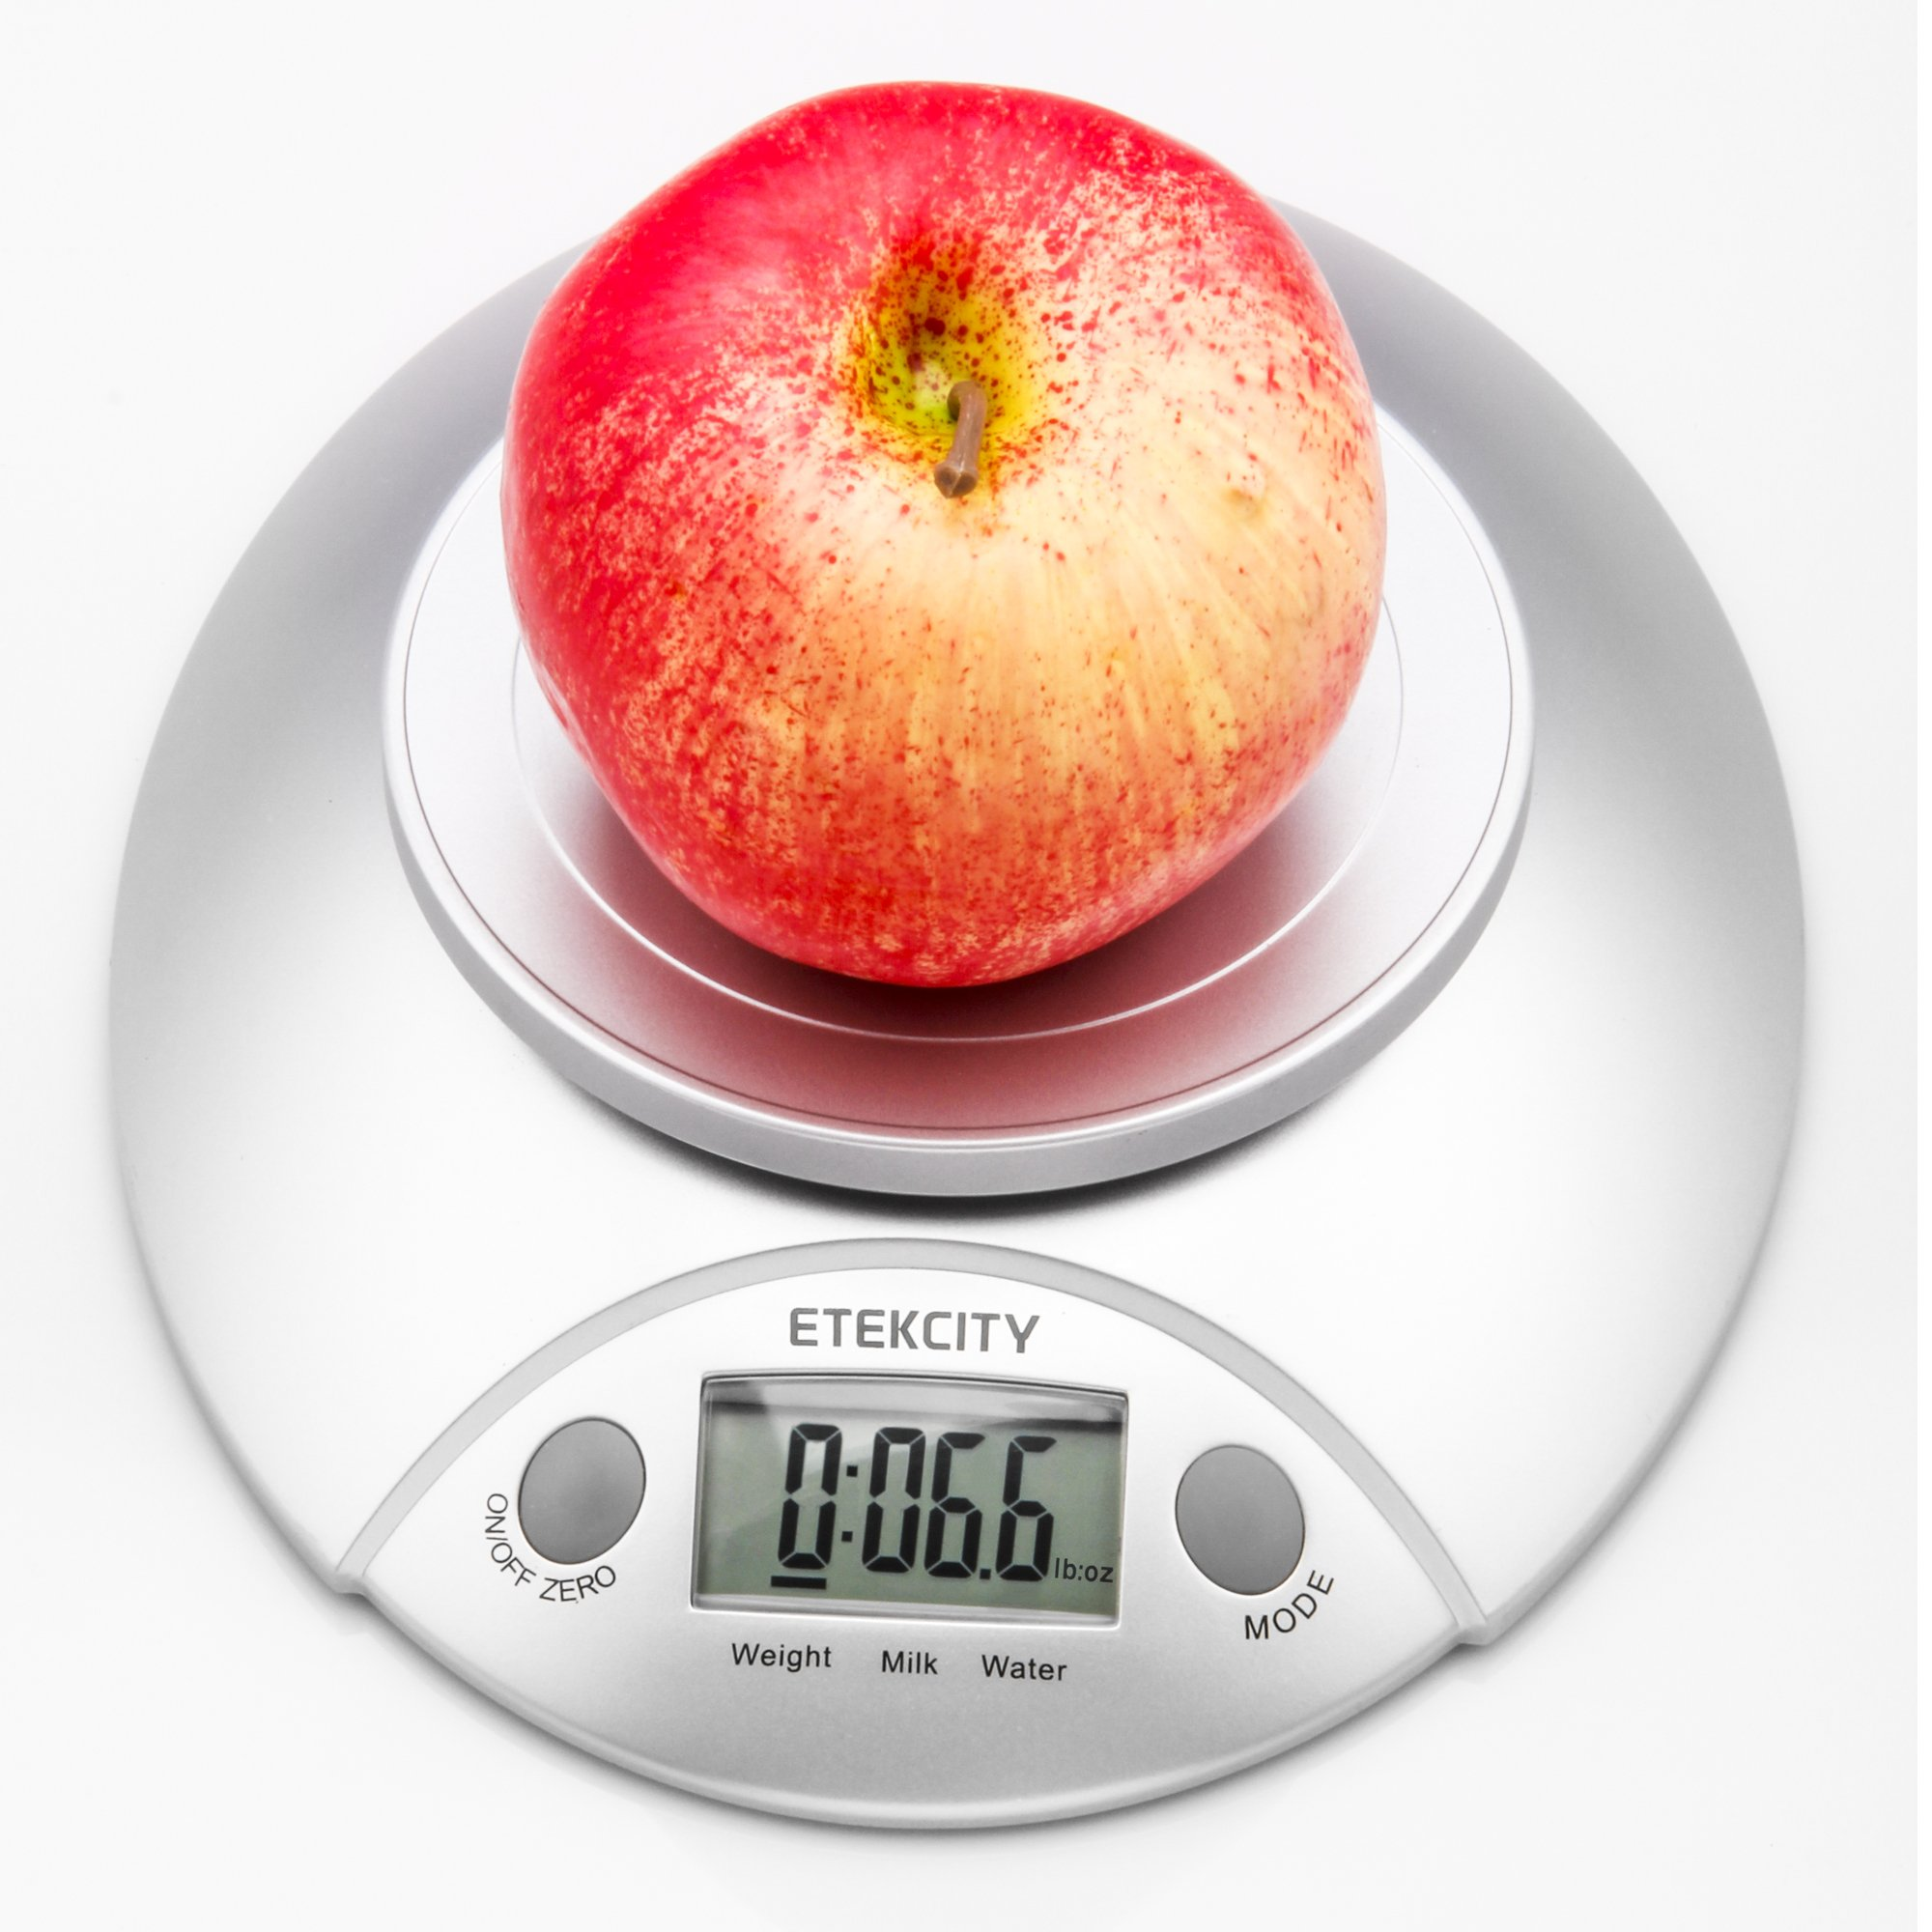 Etekcity Digital Kitchen Food Scale and Multifunction Weight Scale with Removable Bowl, 11 lb 5kg by Etekcity (Image #8)